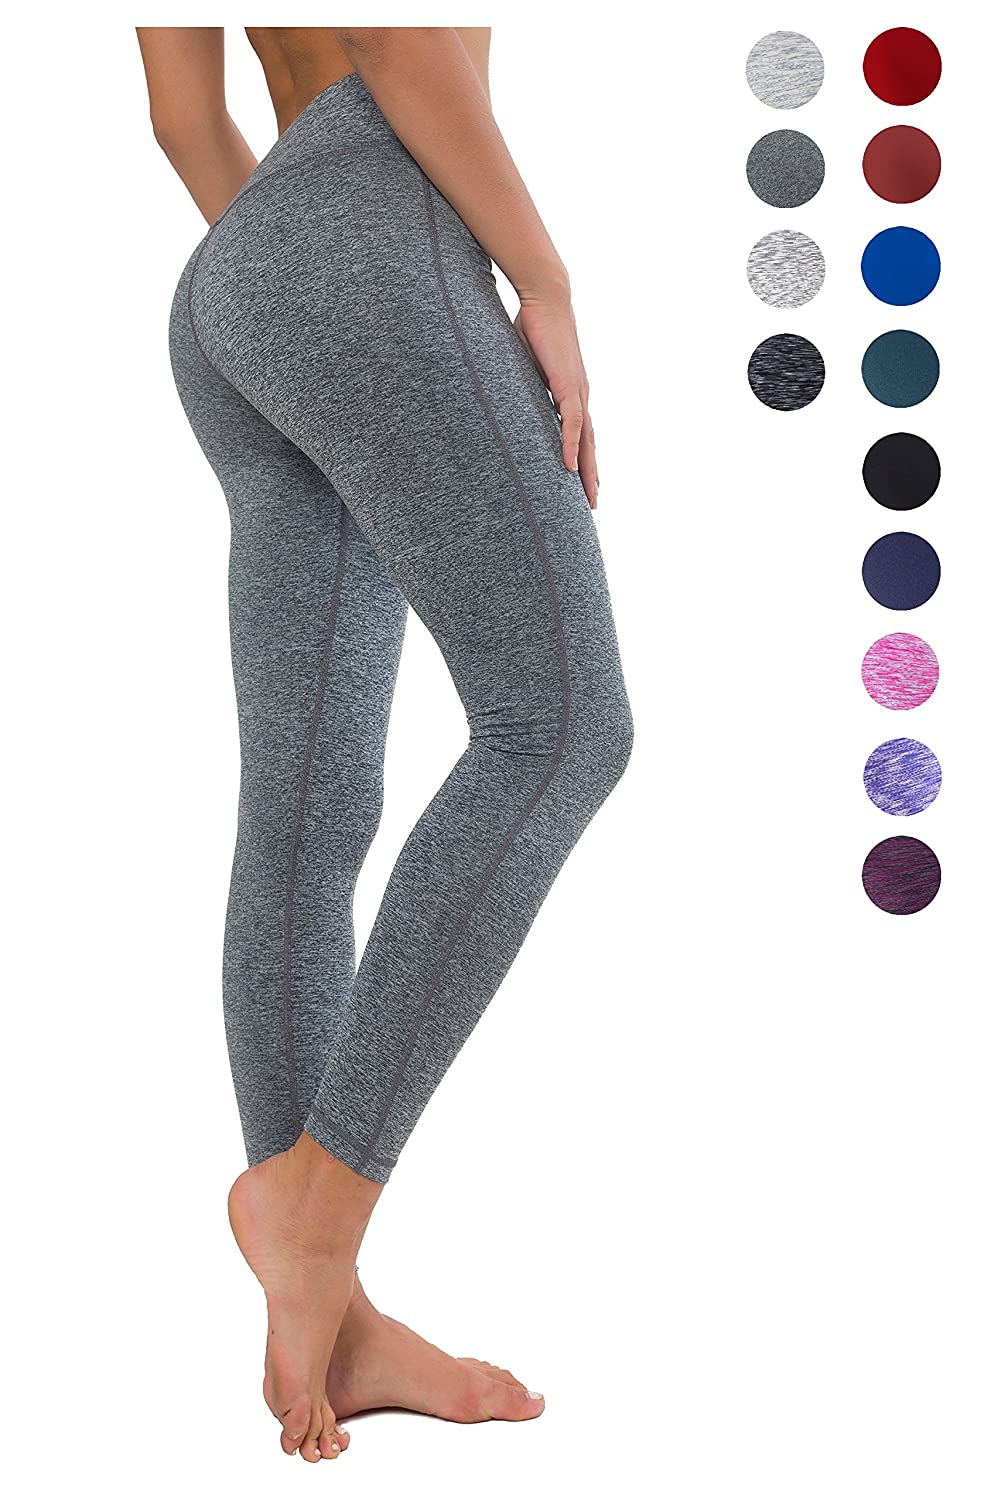 Queenie Ke Women Power Flex Yoga Pants Workout Running Leggings